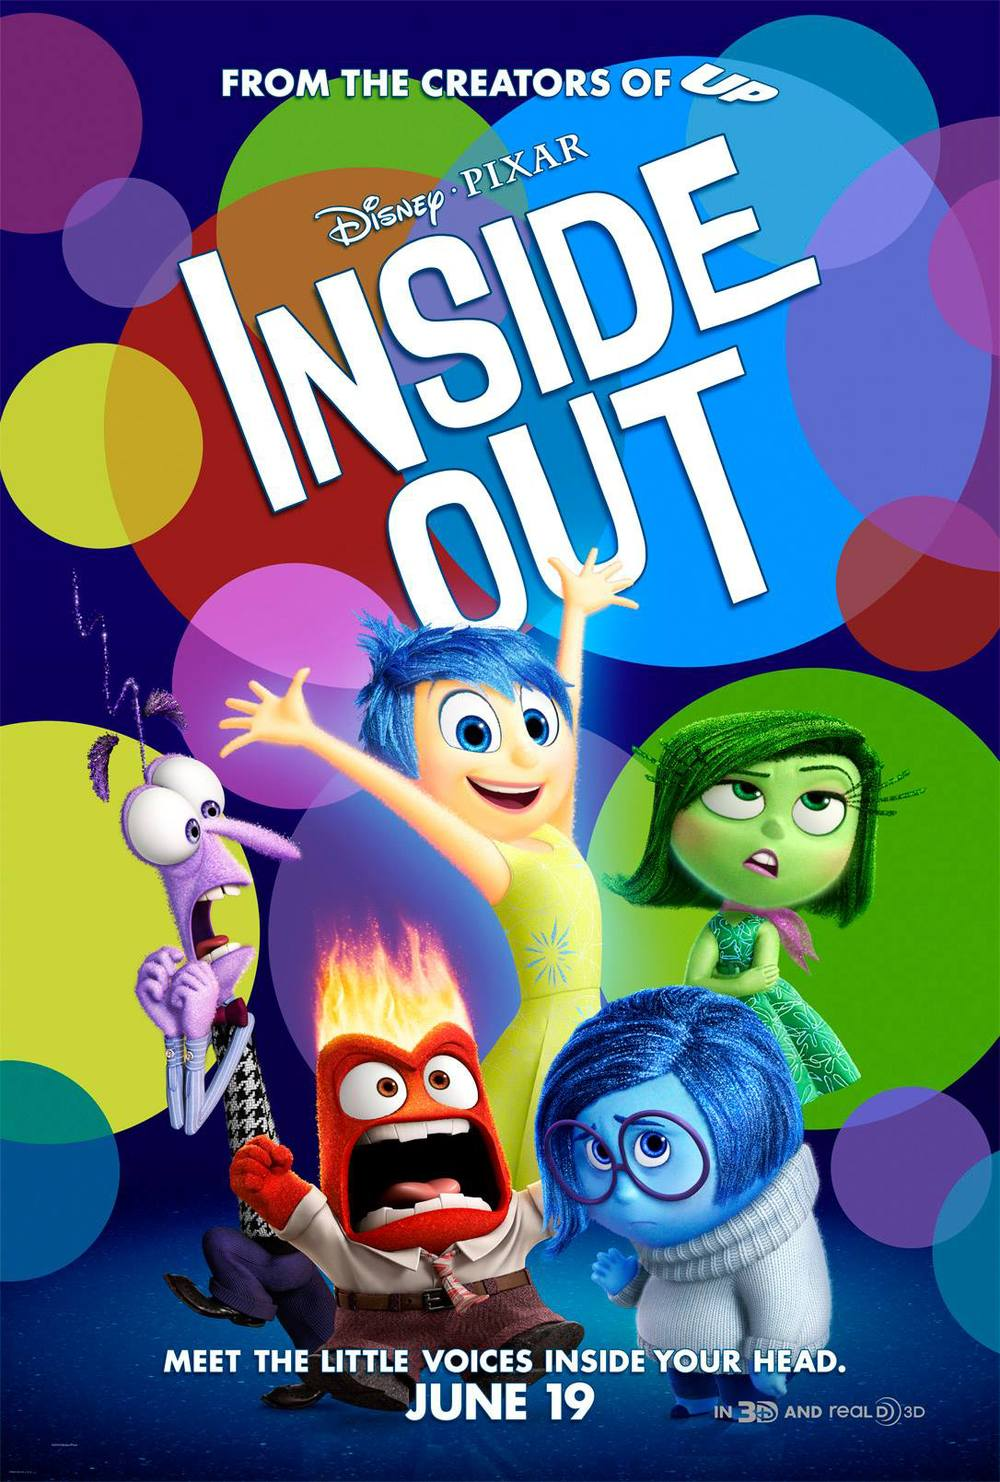 Disney-Pixar-Inside-Out-Movie-Poster.jpg